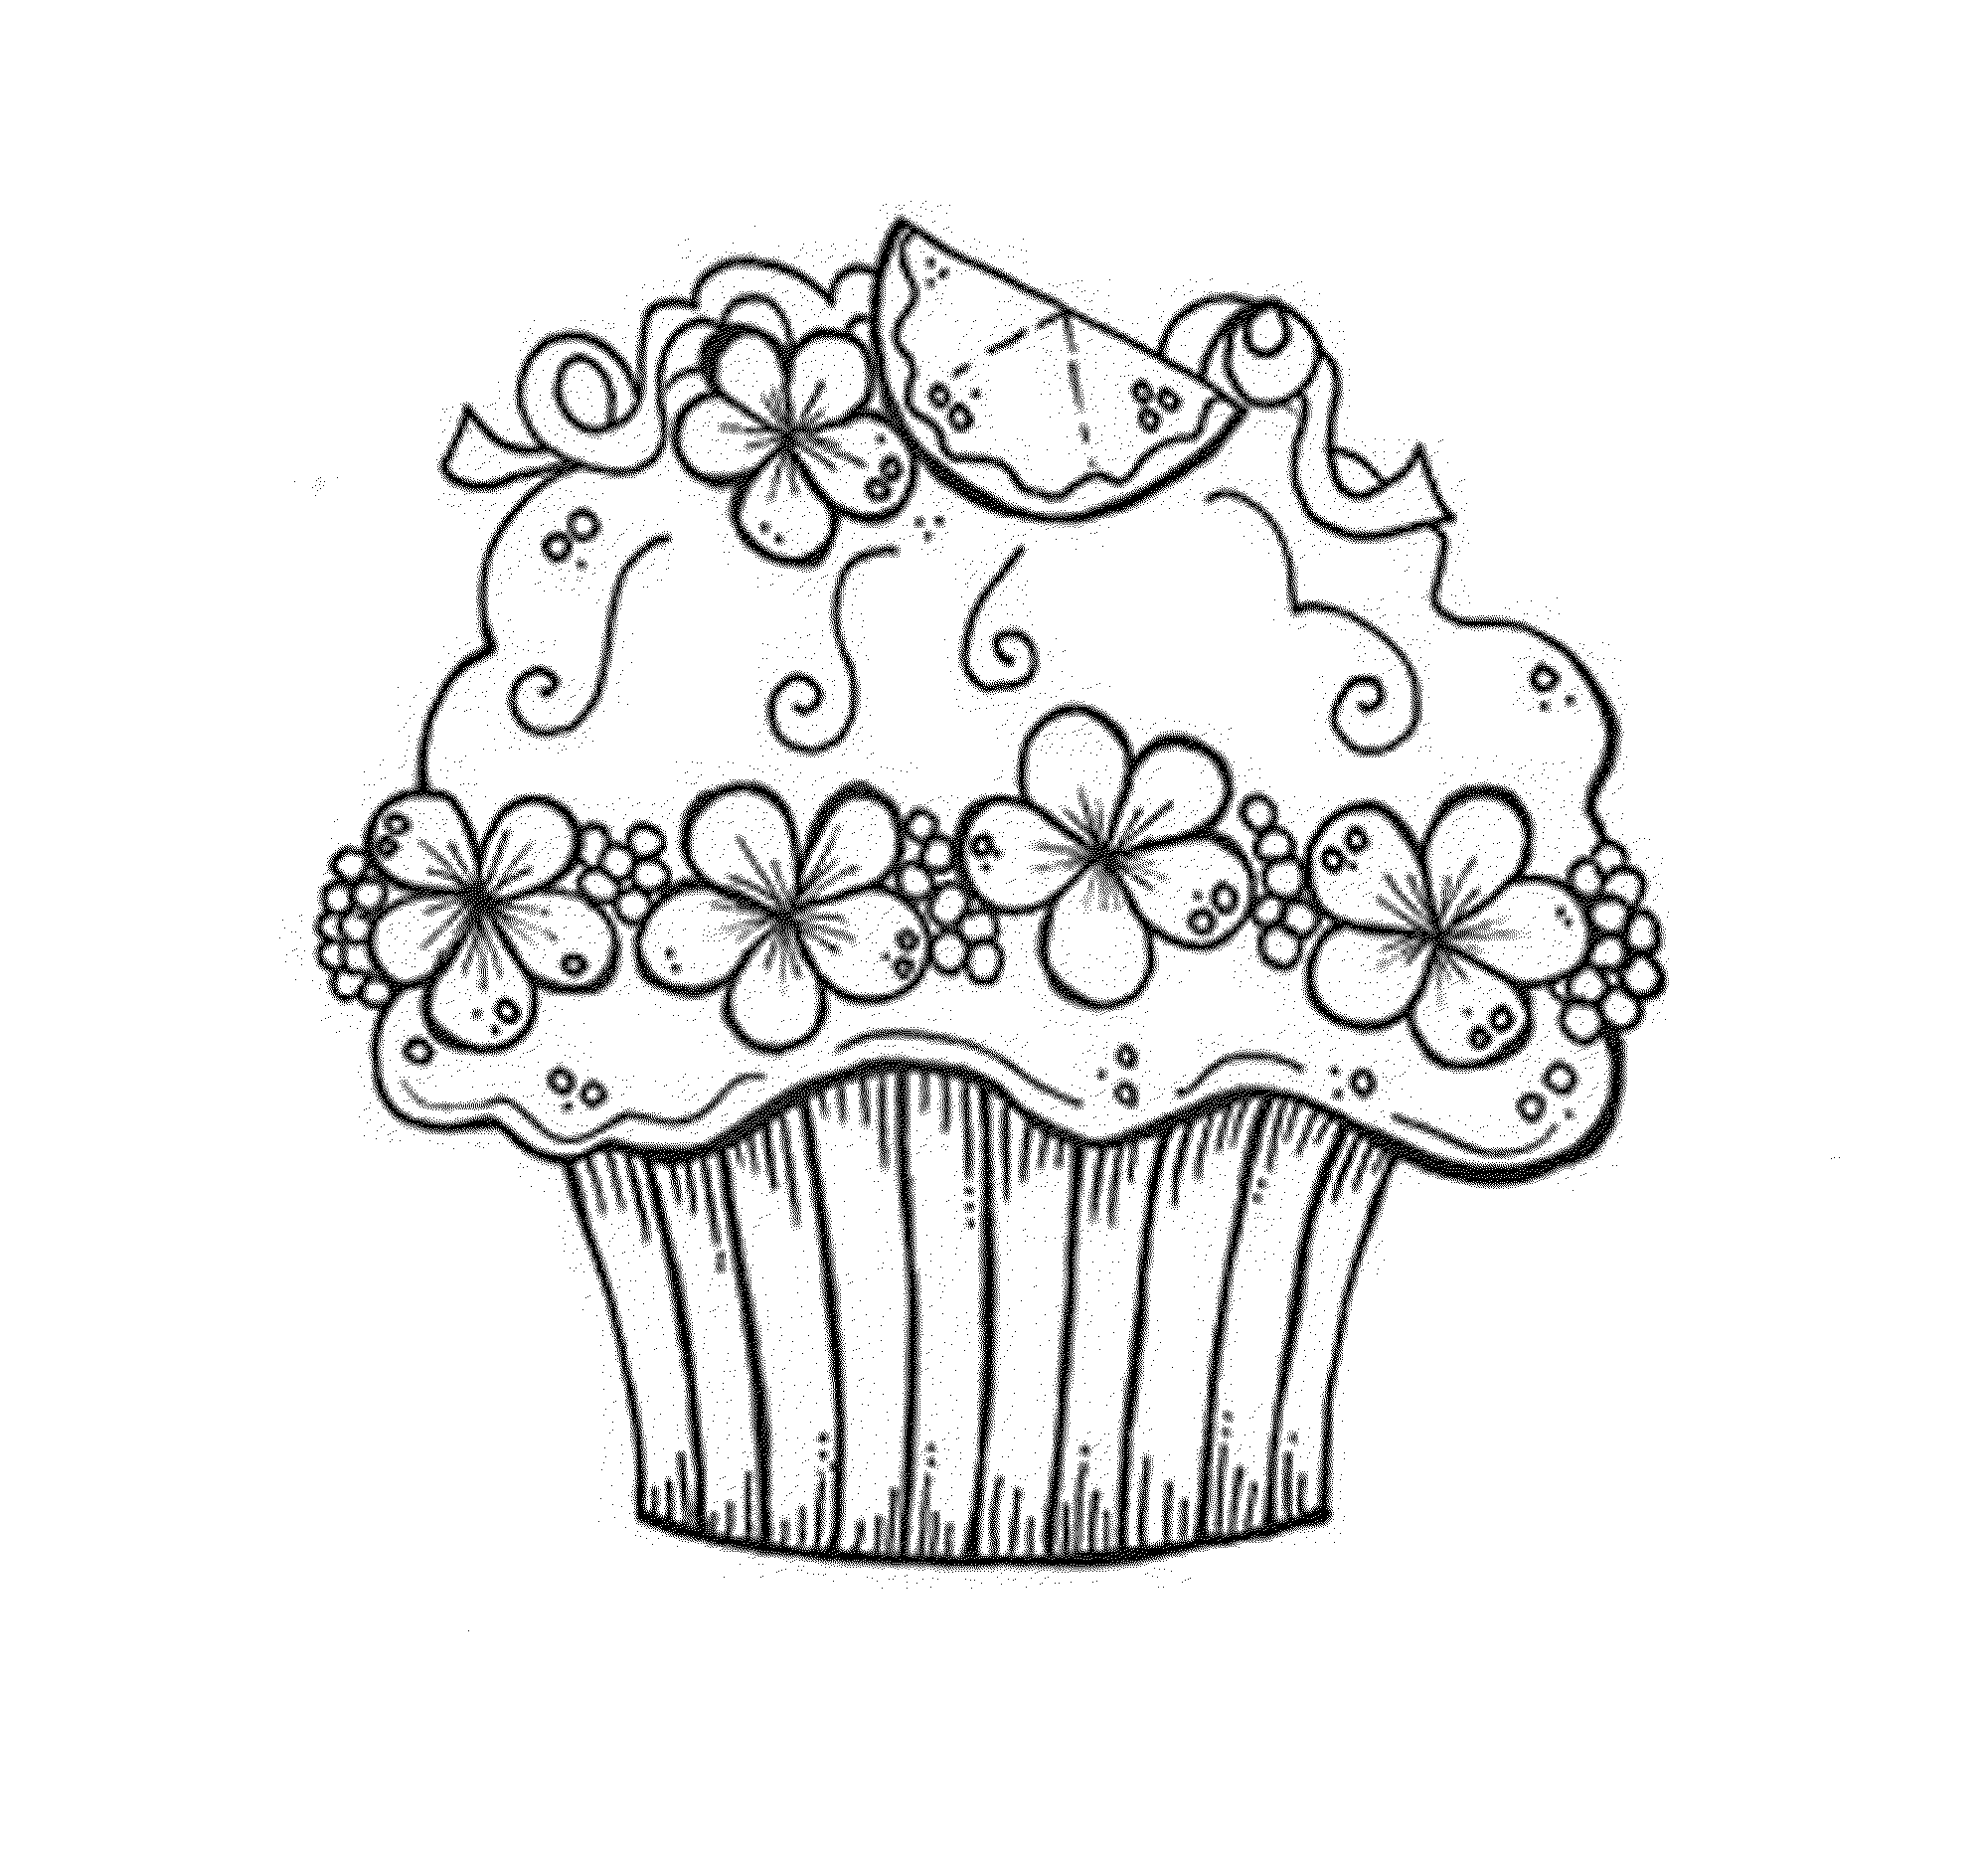 Free Cupcake Coloring Pages Printable Bestappsforkids Com